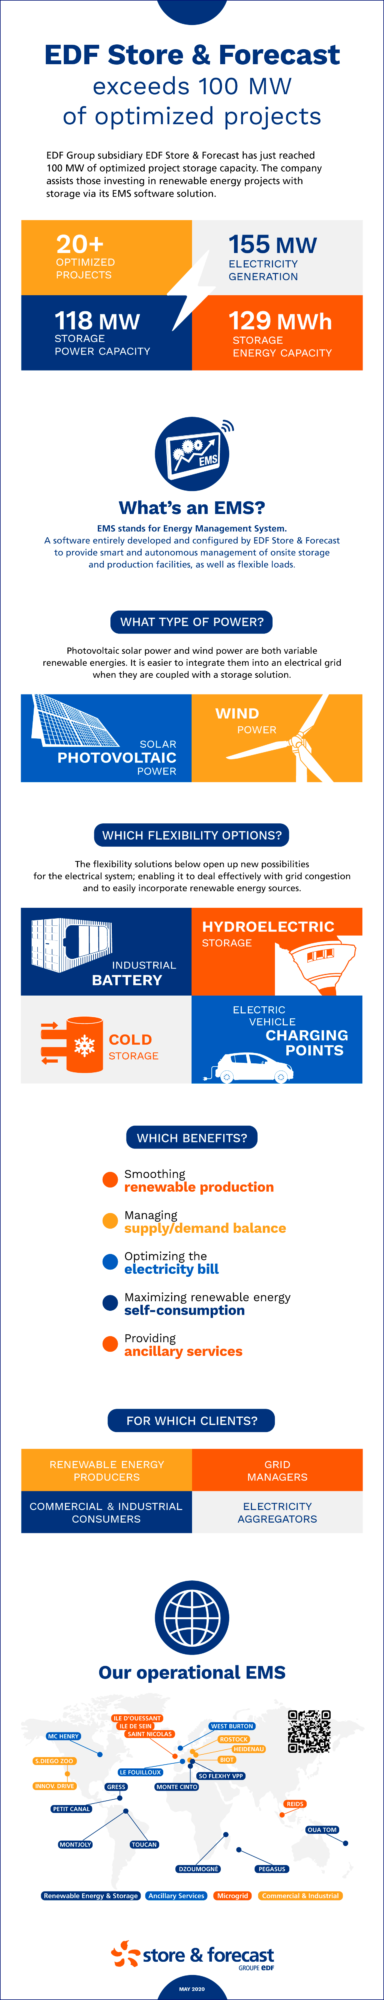 EDF Store & Forecast exceeds 100 MW of optimized projects